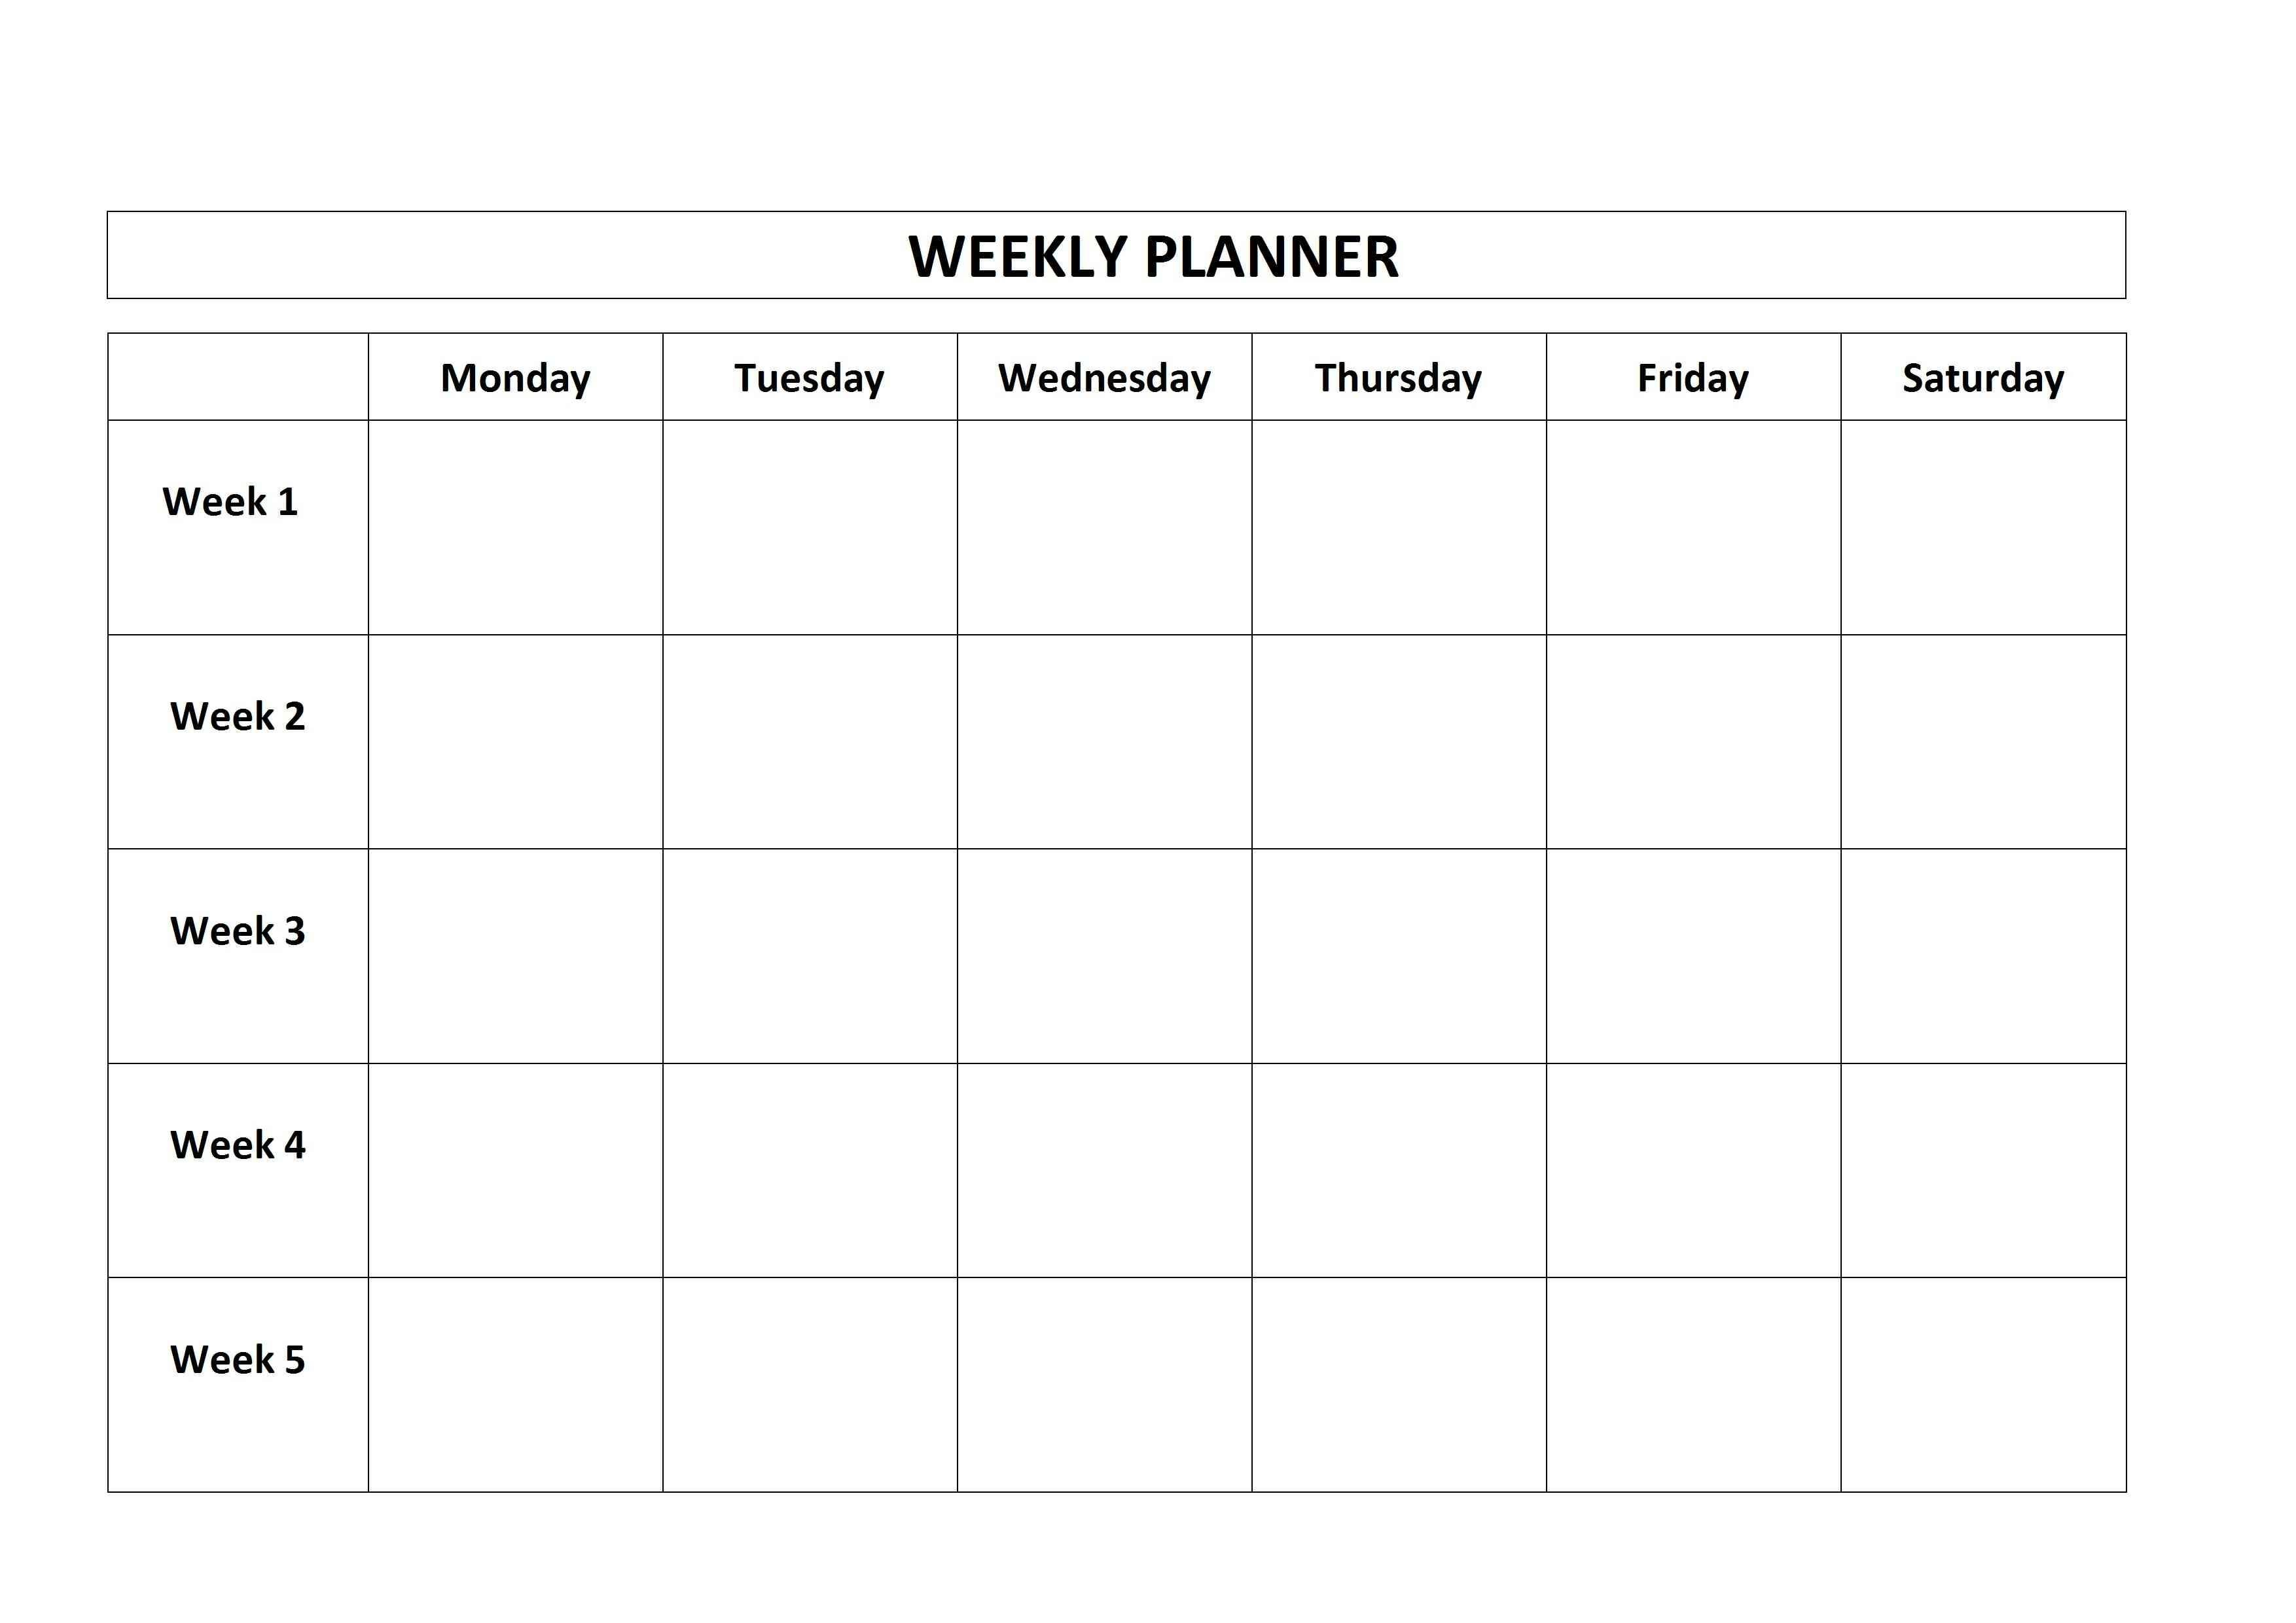 Free Printable Weekly Planner Monday Friday School Calendar Printable One Week Calendar Free